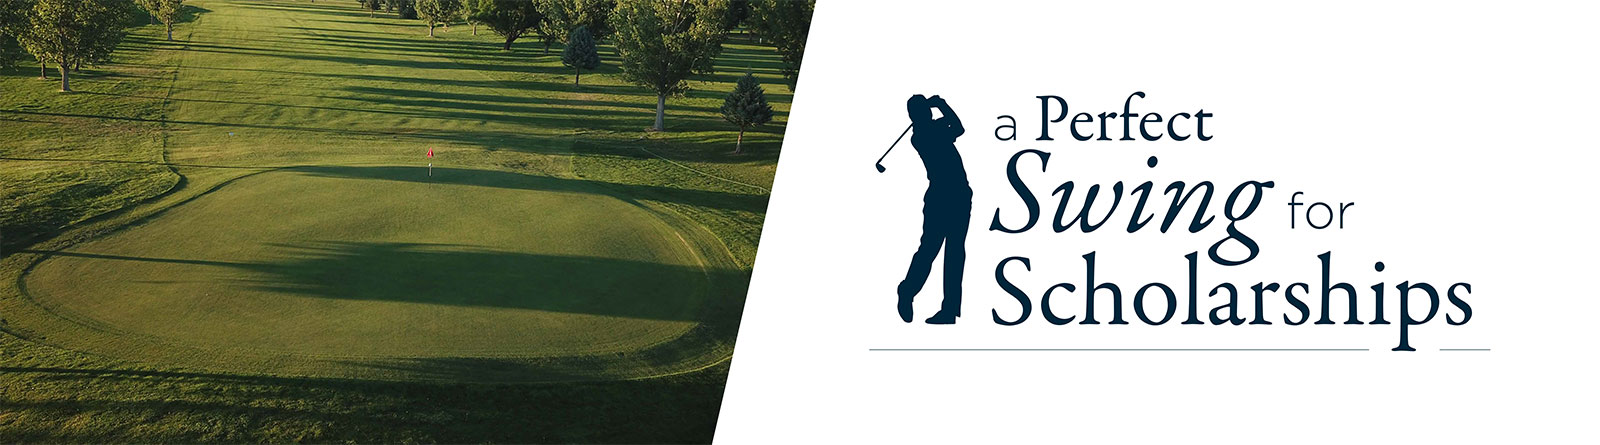 A Perfect Swing for Scholarships